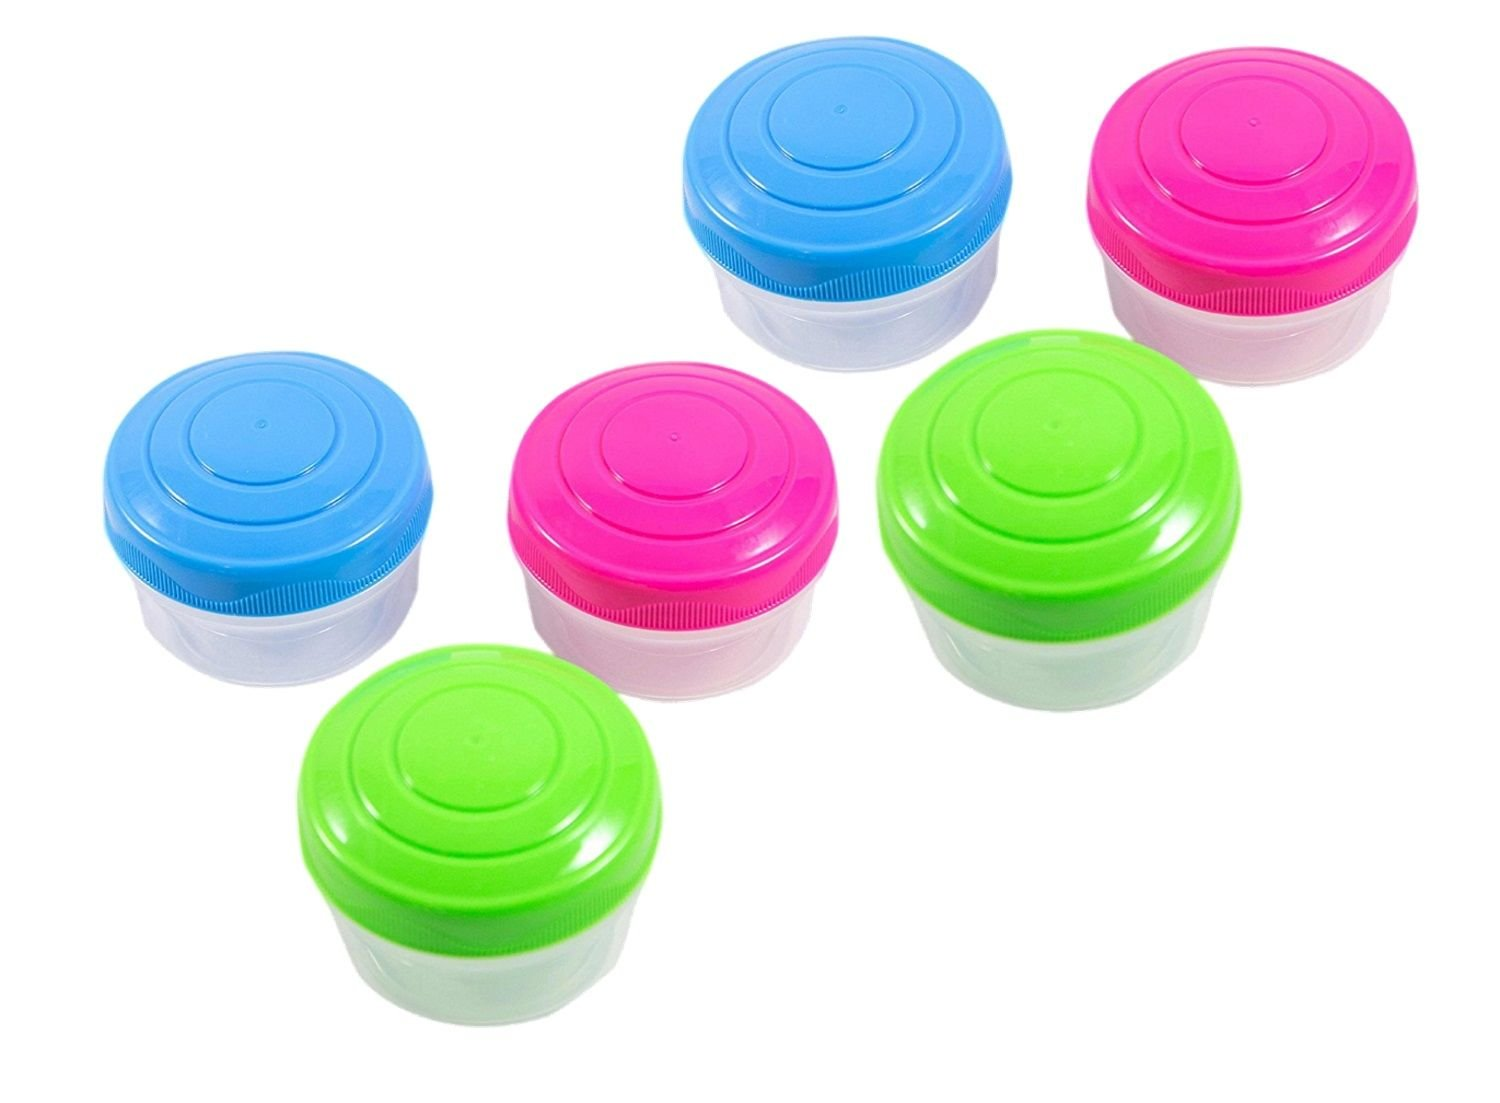 Sistema To Go Collection Mini Bites Small Food Storage Containers, 4.3 oz./127 mL, Pink/Green/Blue, 3 Count 21467NW